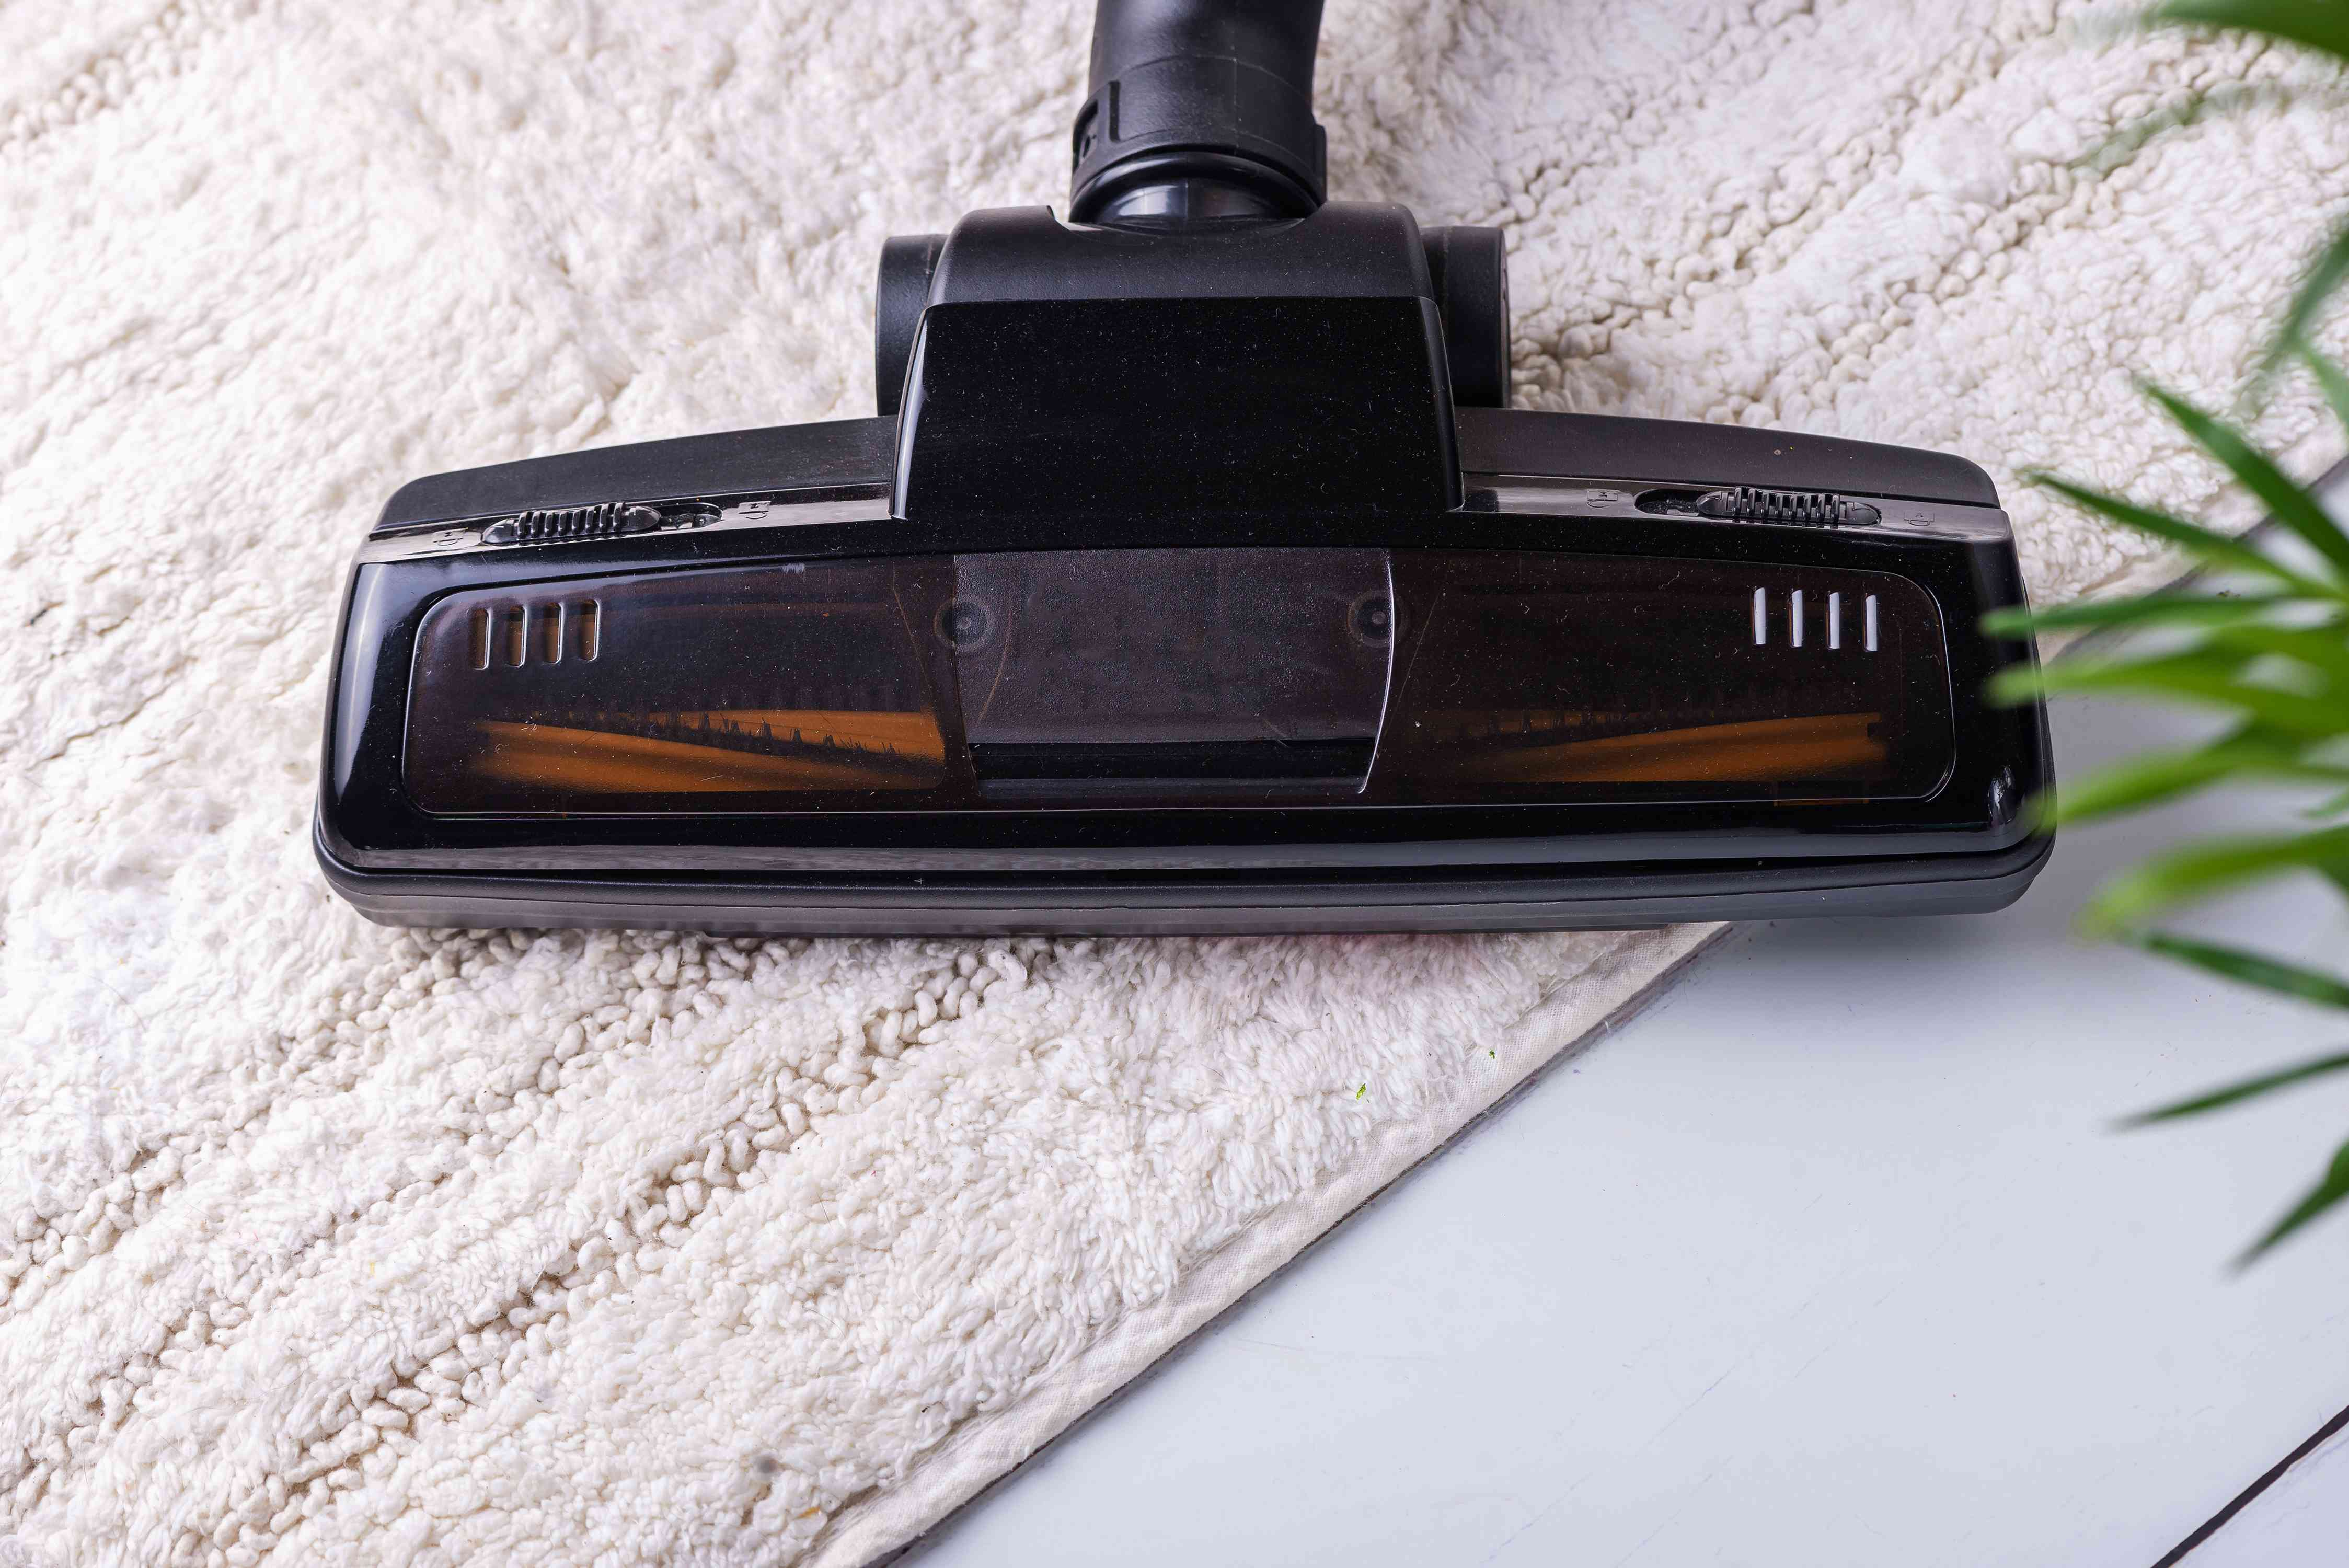 vacuuming the rug after letting it air dry